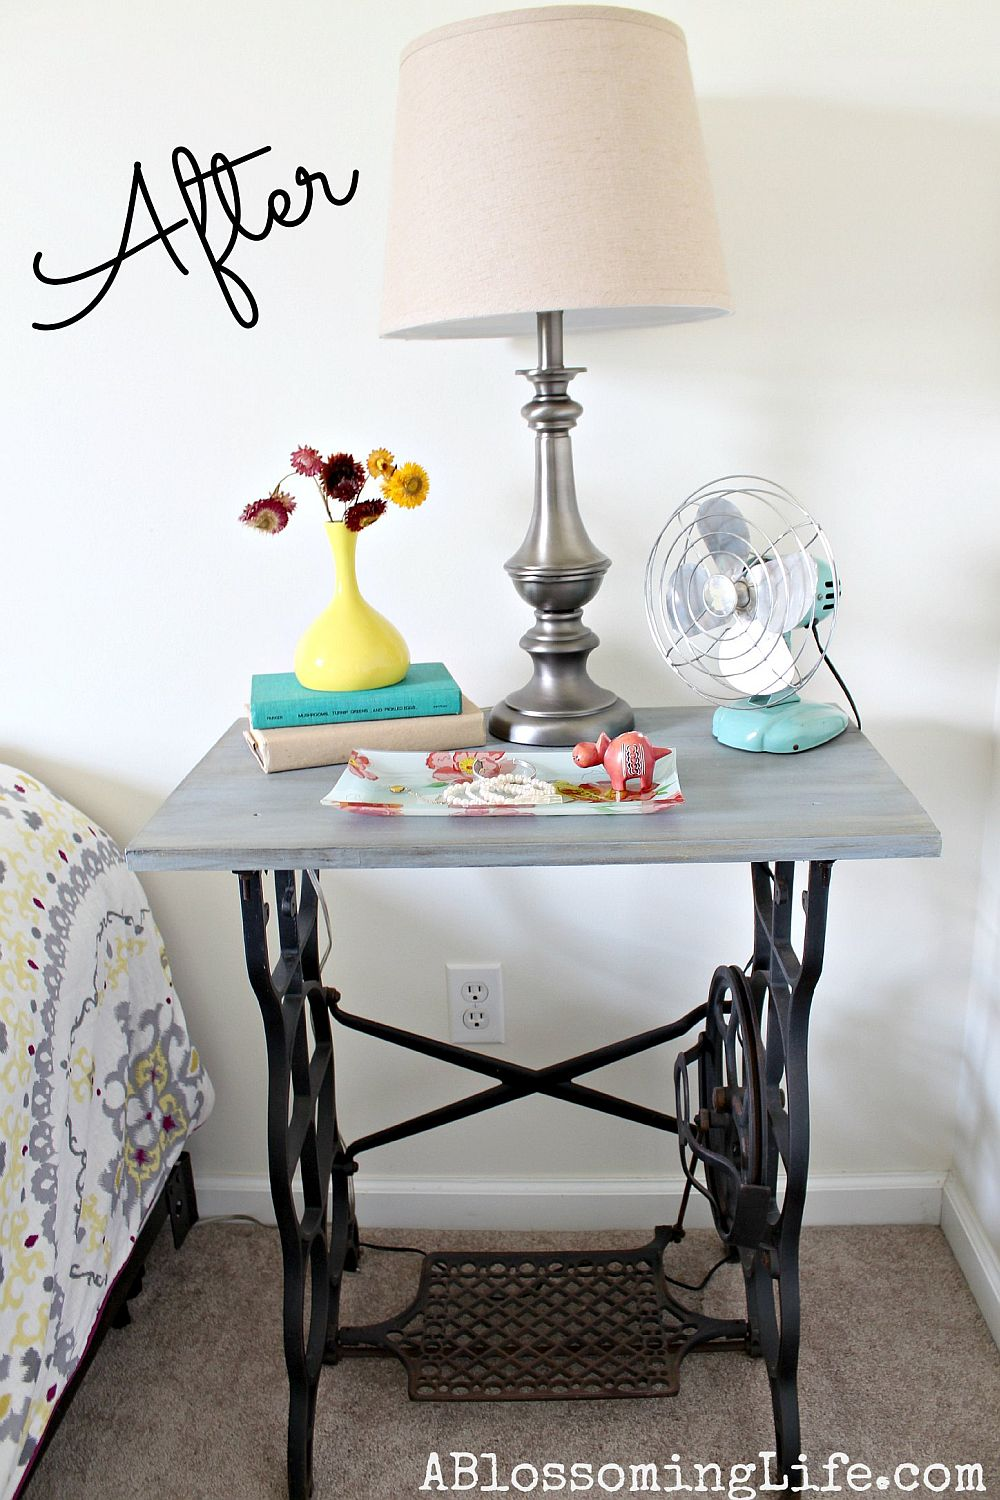 Nightstand from sweing table DIY